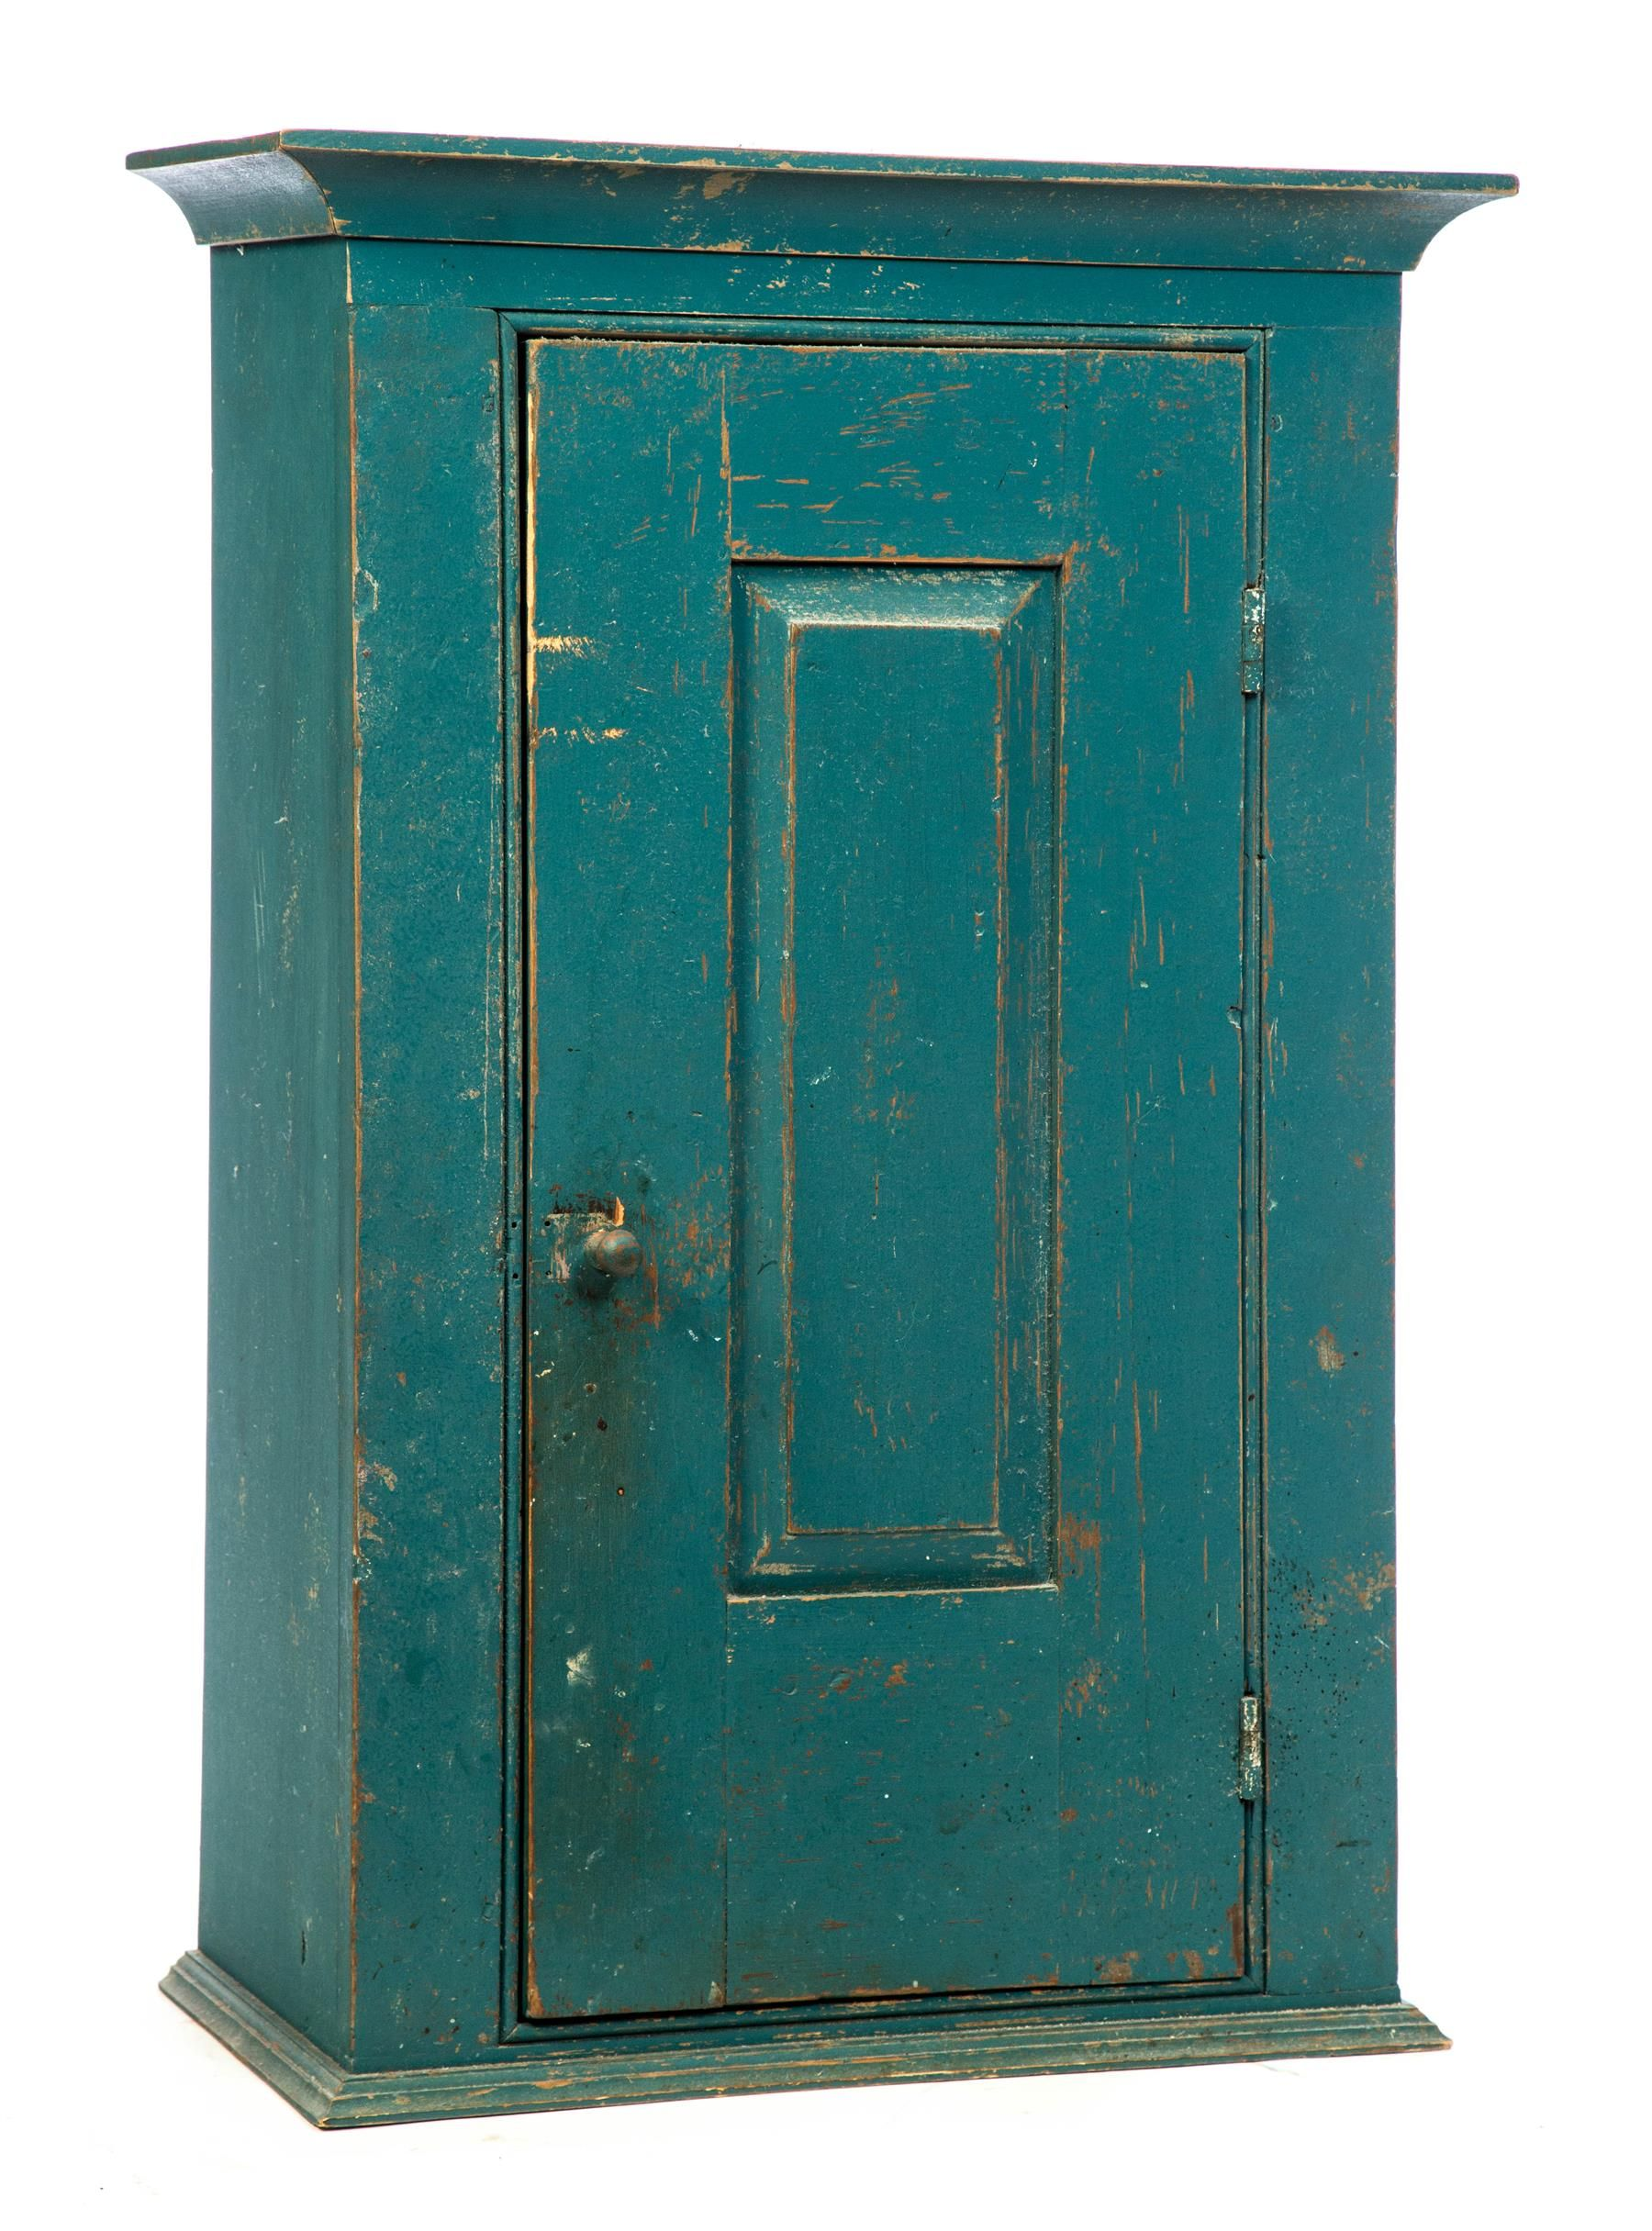 Pin By Virginia Clarkson On Vintage And Antique Furniture In 2020 Vintage Cupboard Primitive Decorating Country